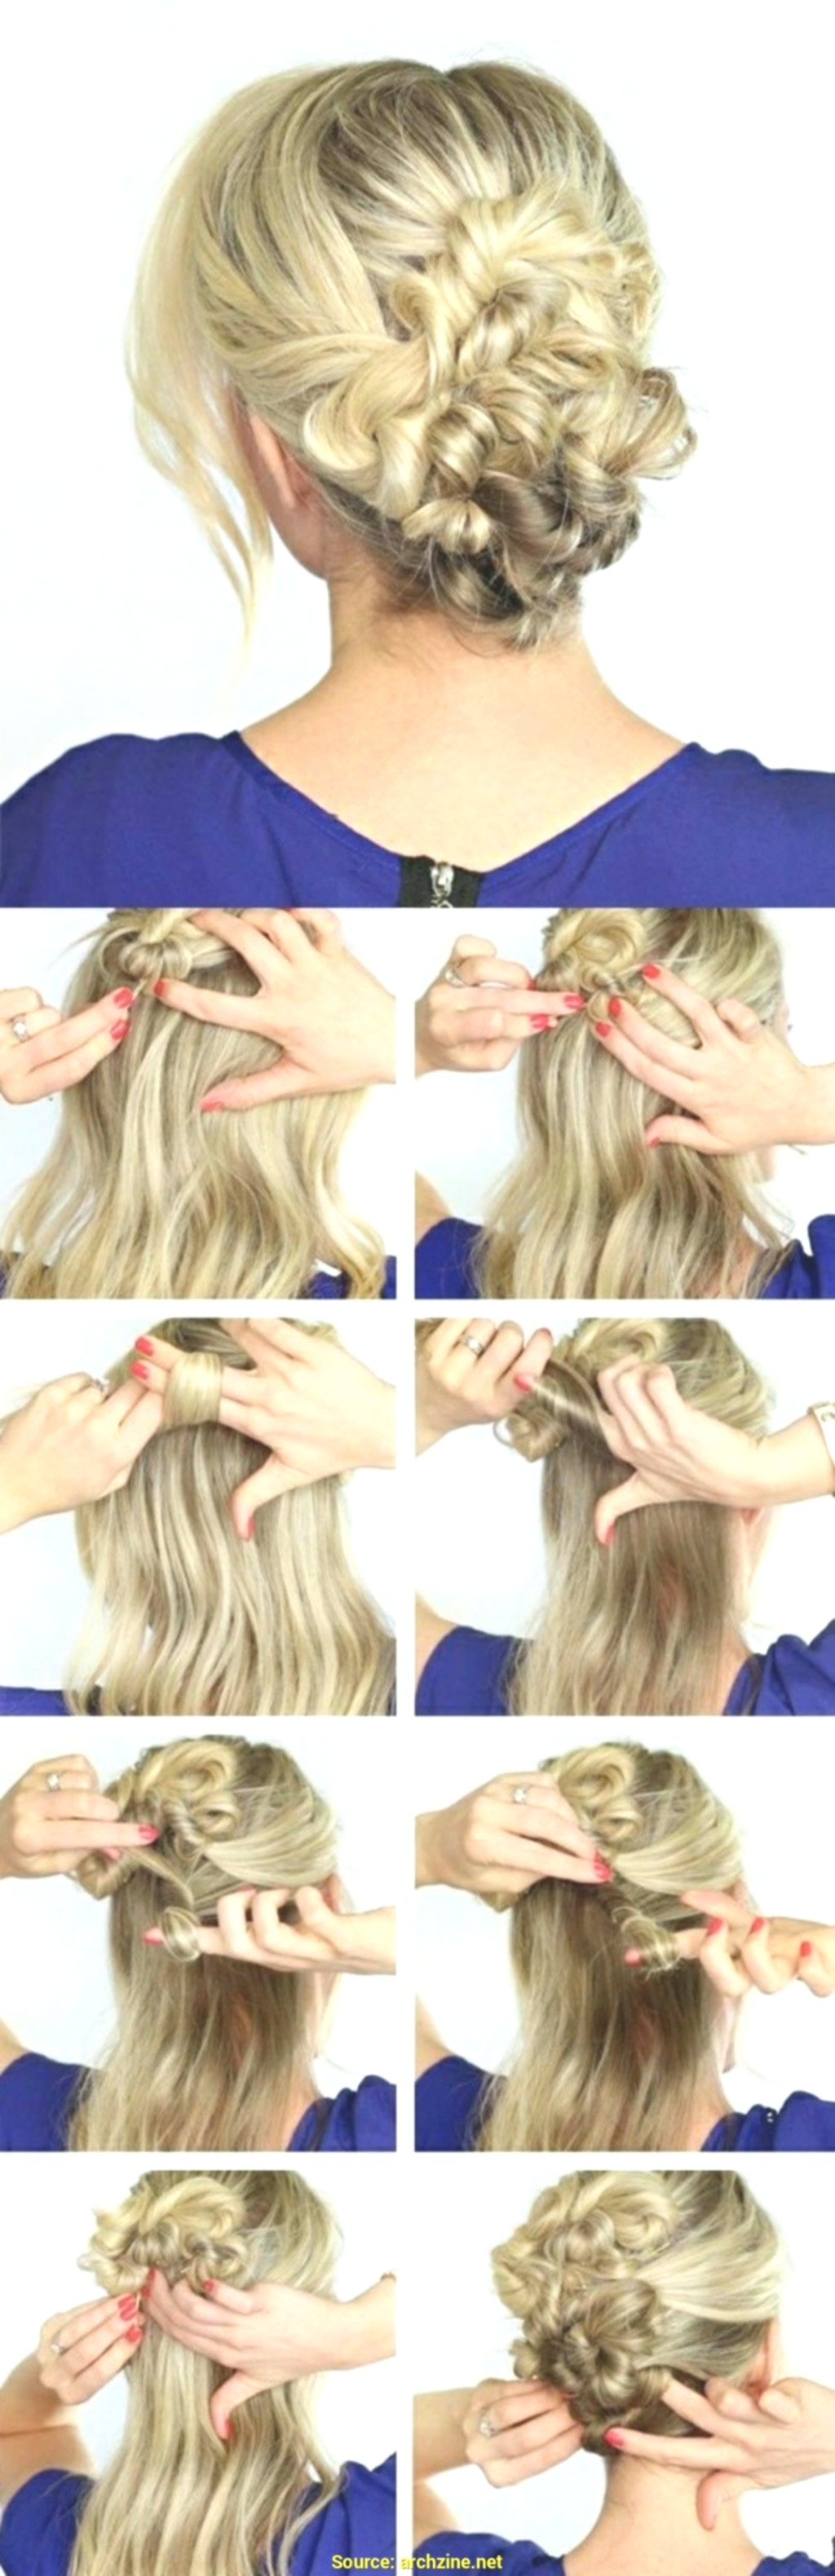 new hair self braiding photo-Modern hair self braiding models